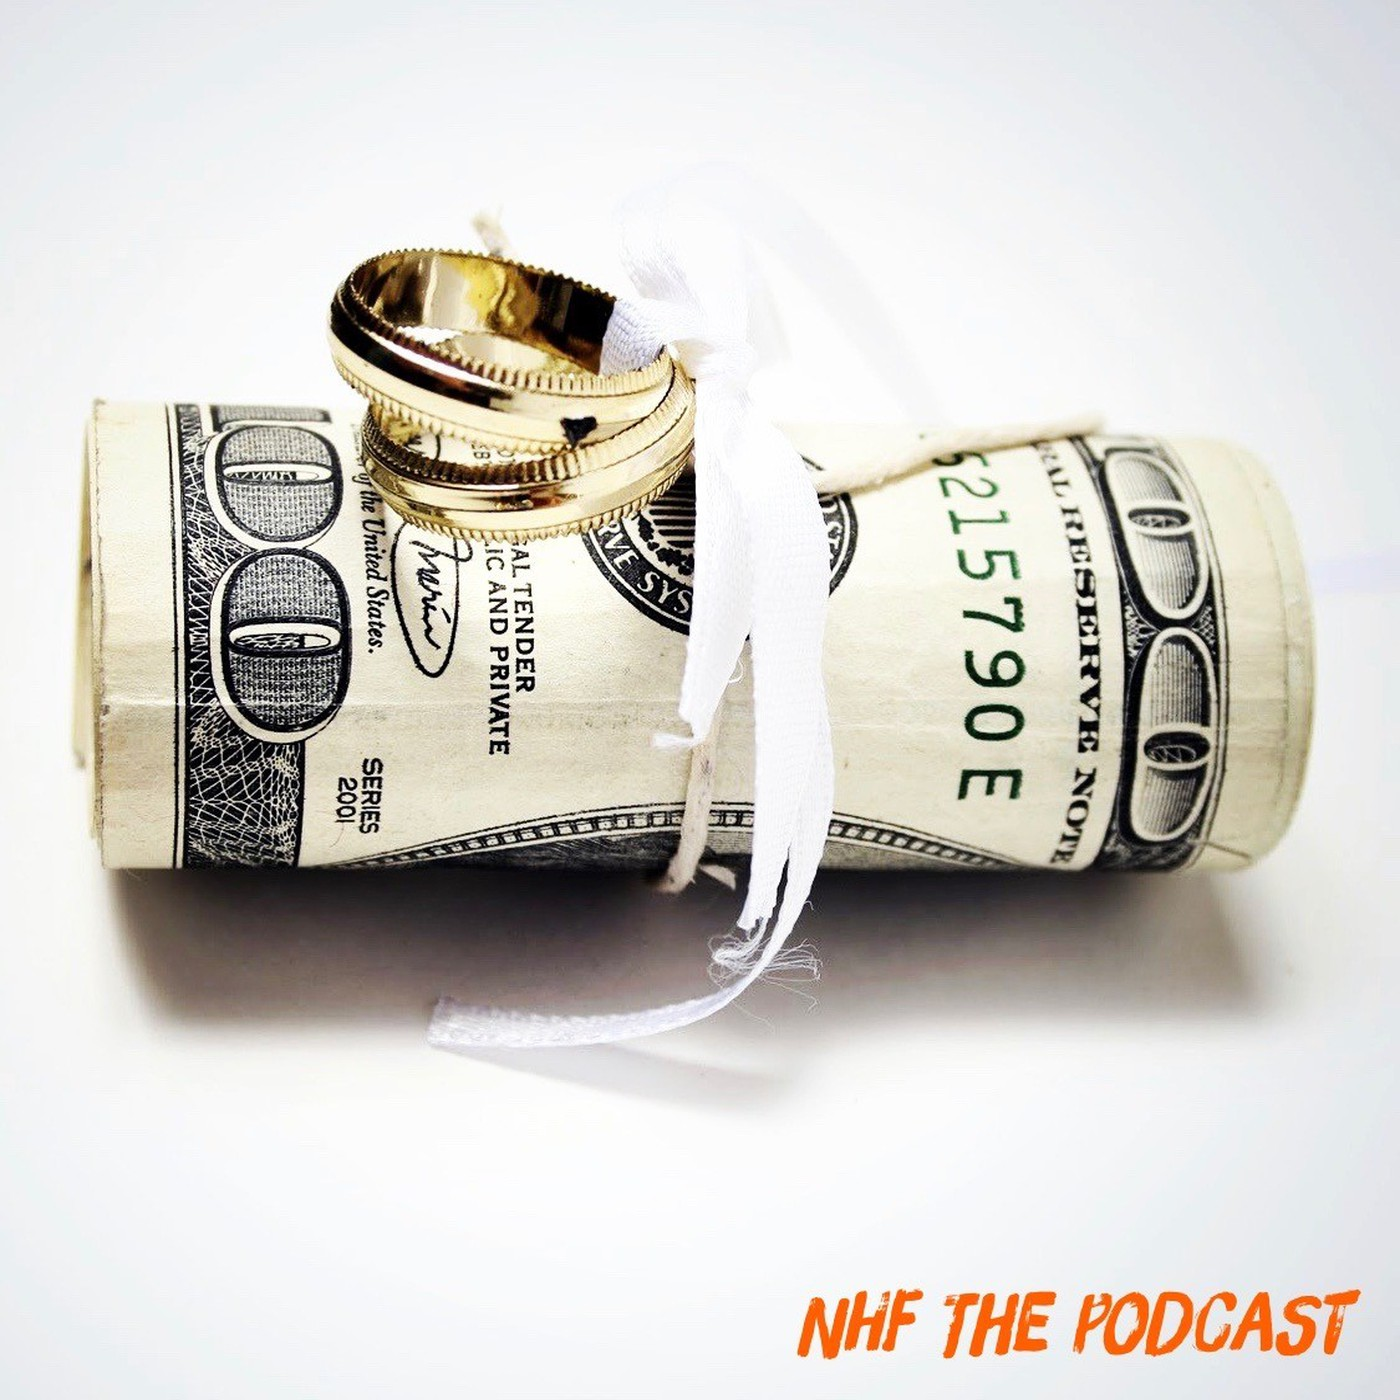 NHF The Podcast